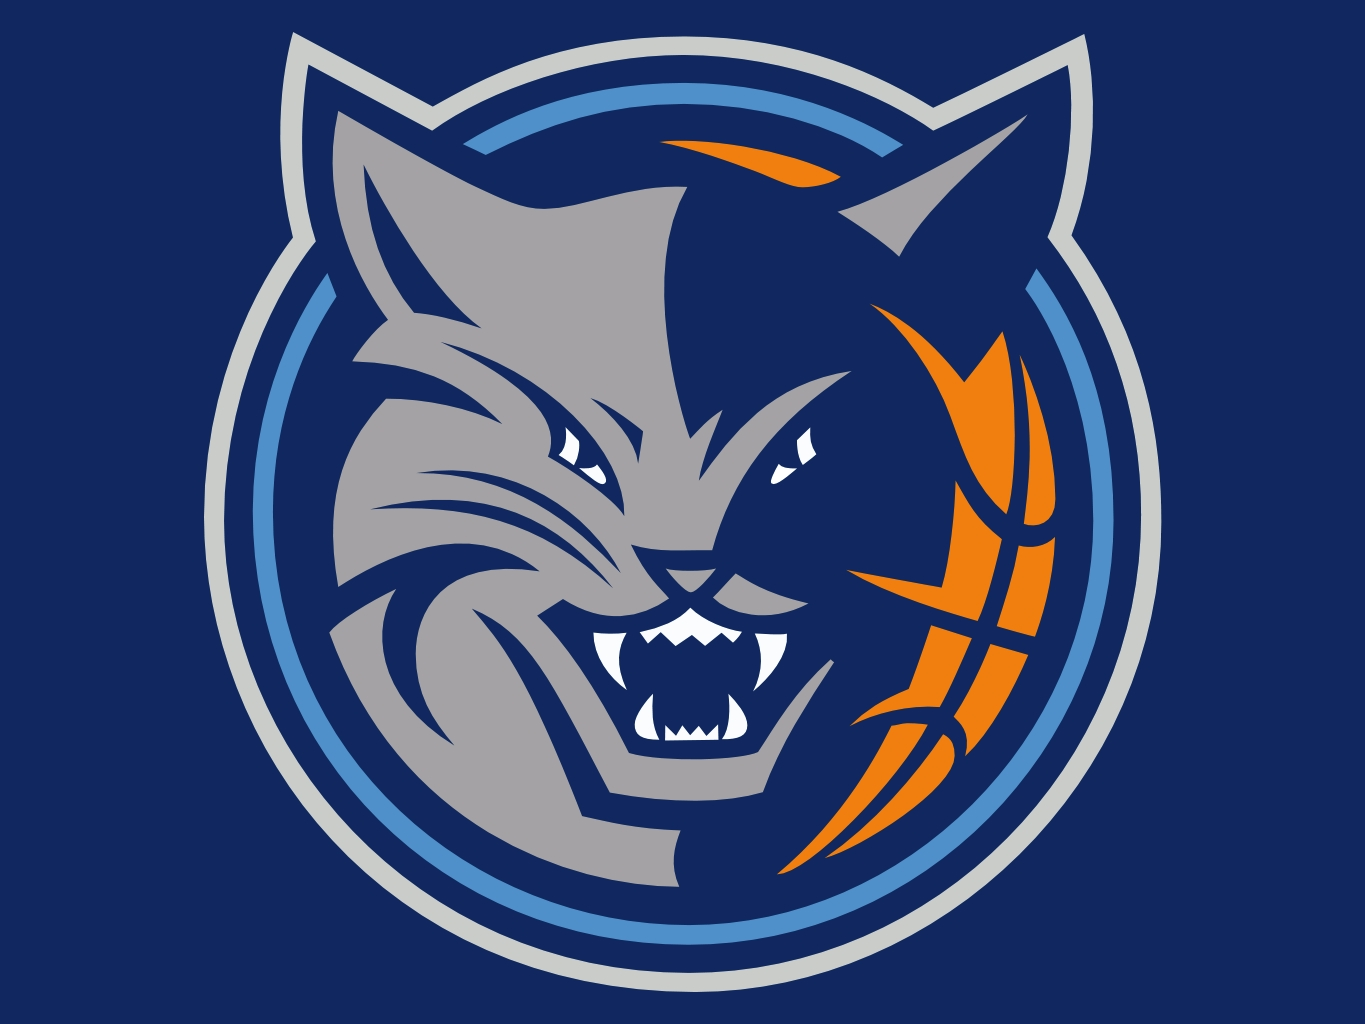 Charlotte Bobcats Pro Sports Teams Wiki Fandom Powered By Wikia